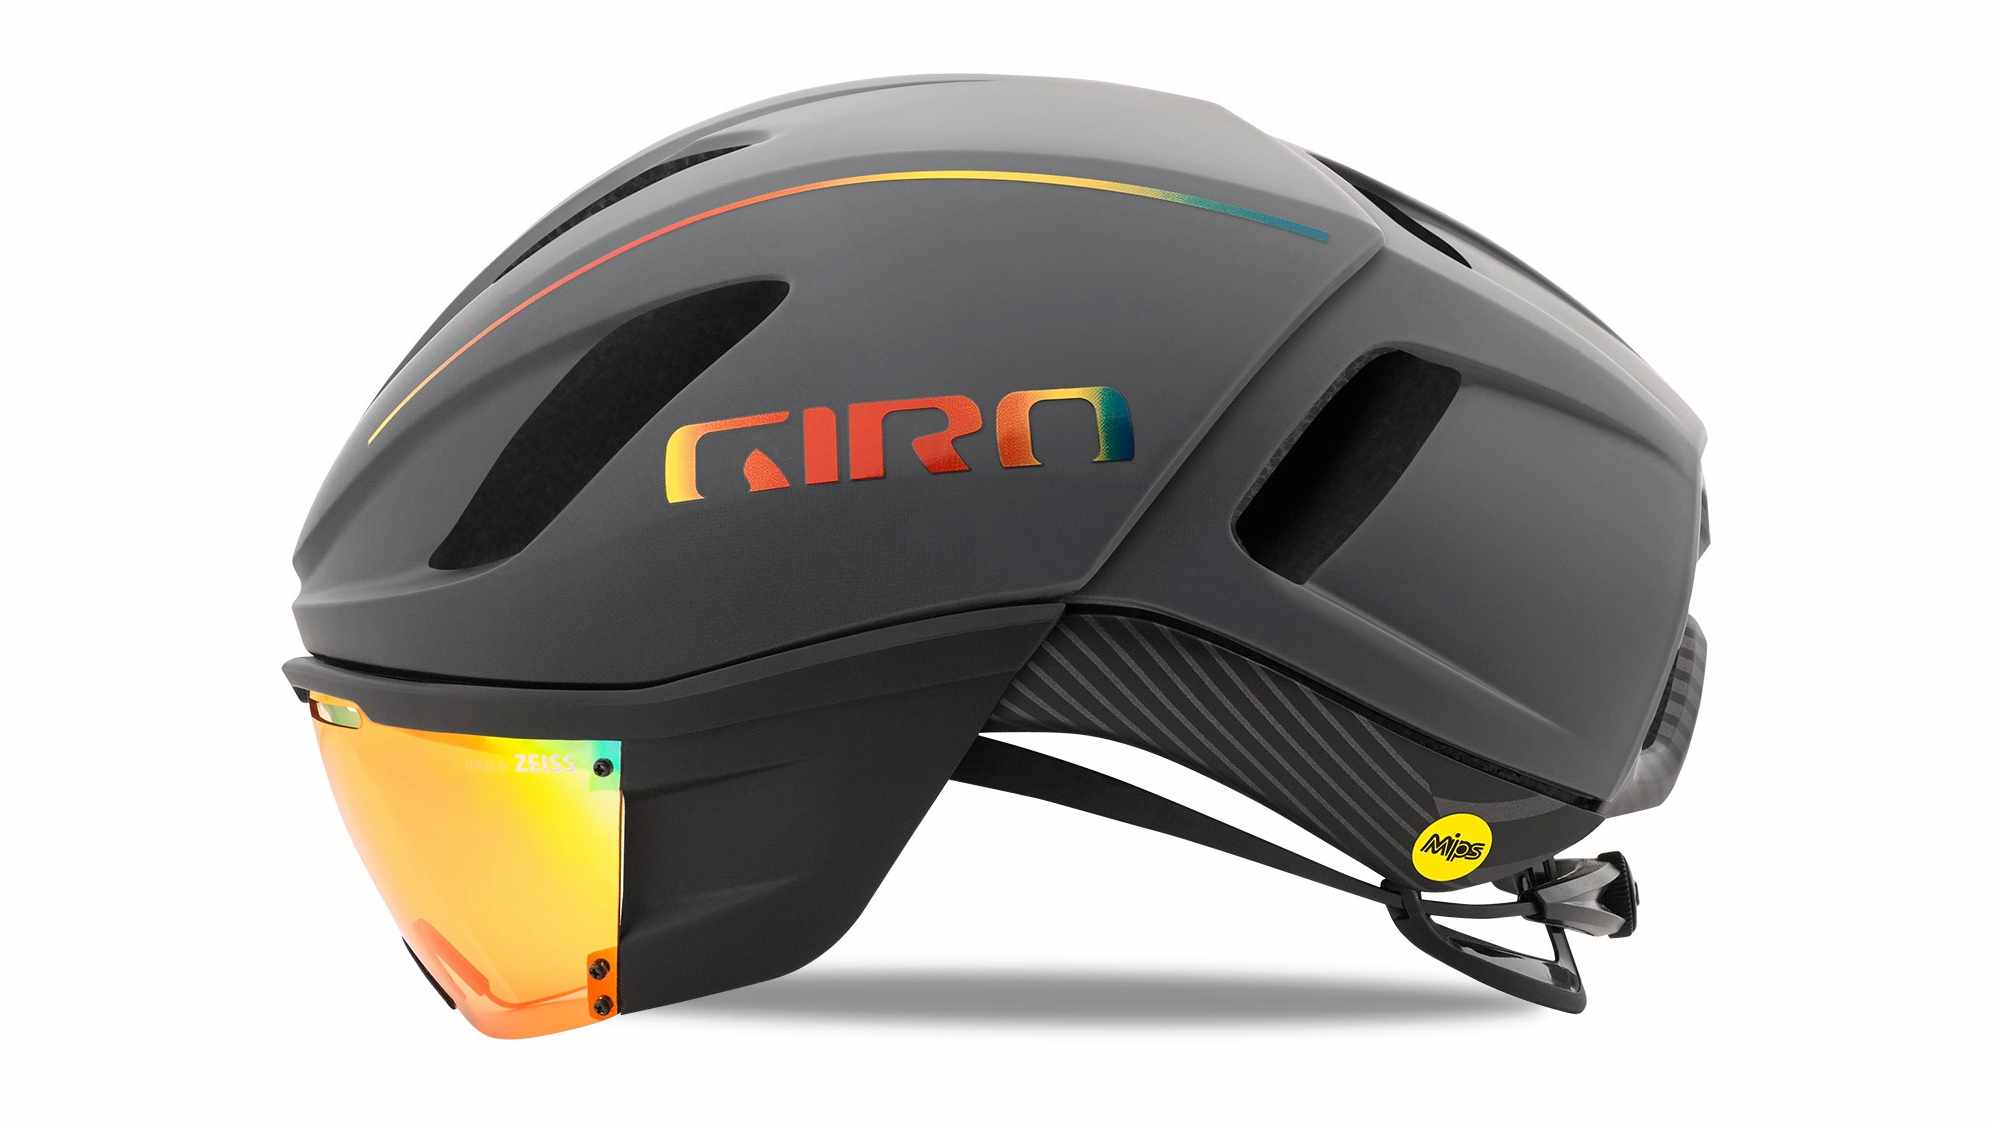 The Giro Vanquish has a magnetic Zeiss shield, integrated MIPS and ventilation that is far superior to the Air Attack that it replaces